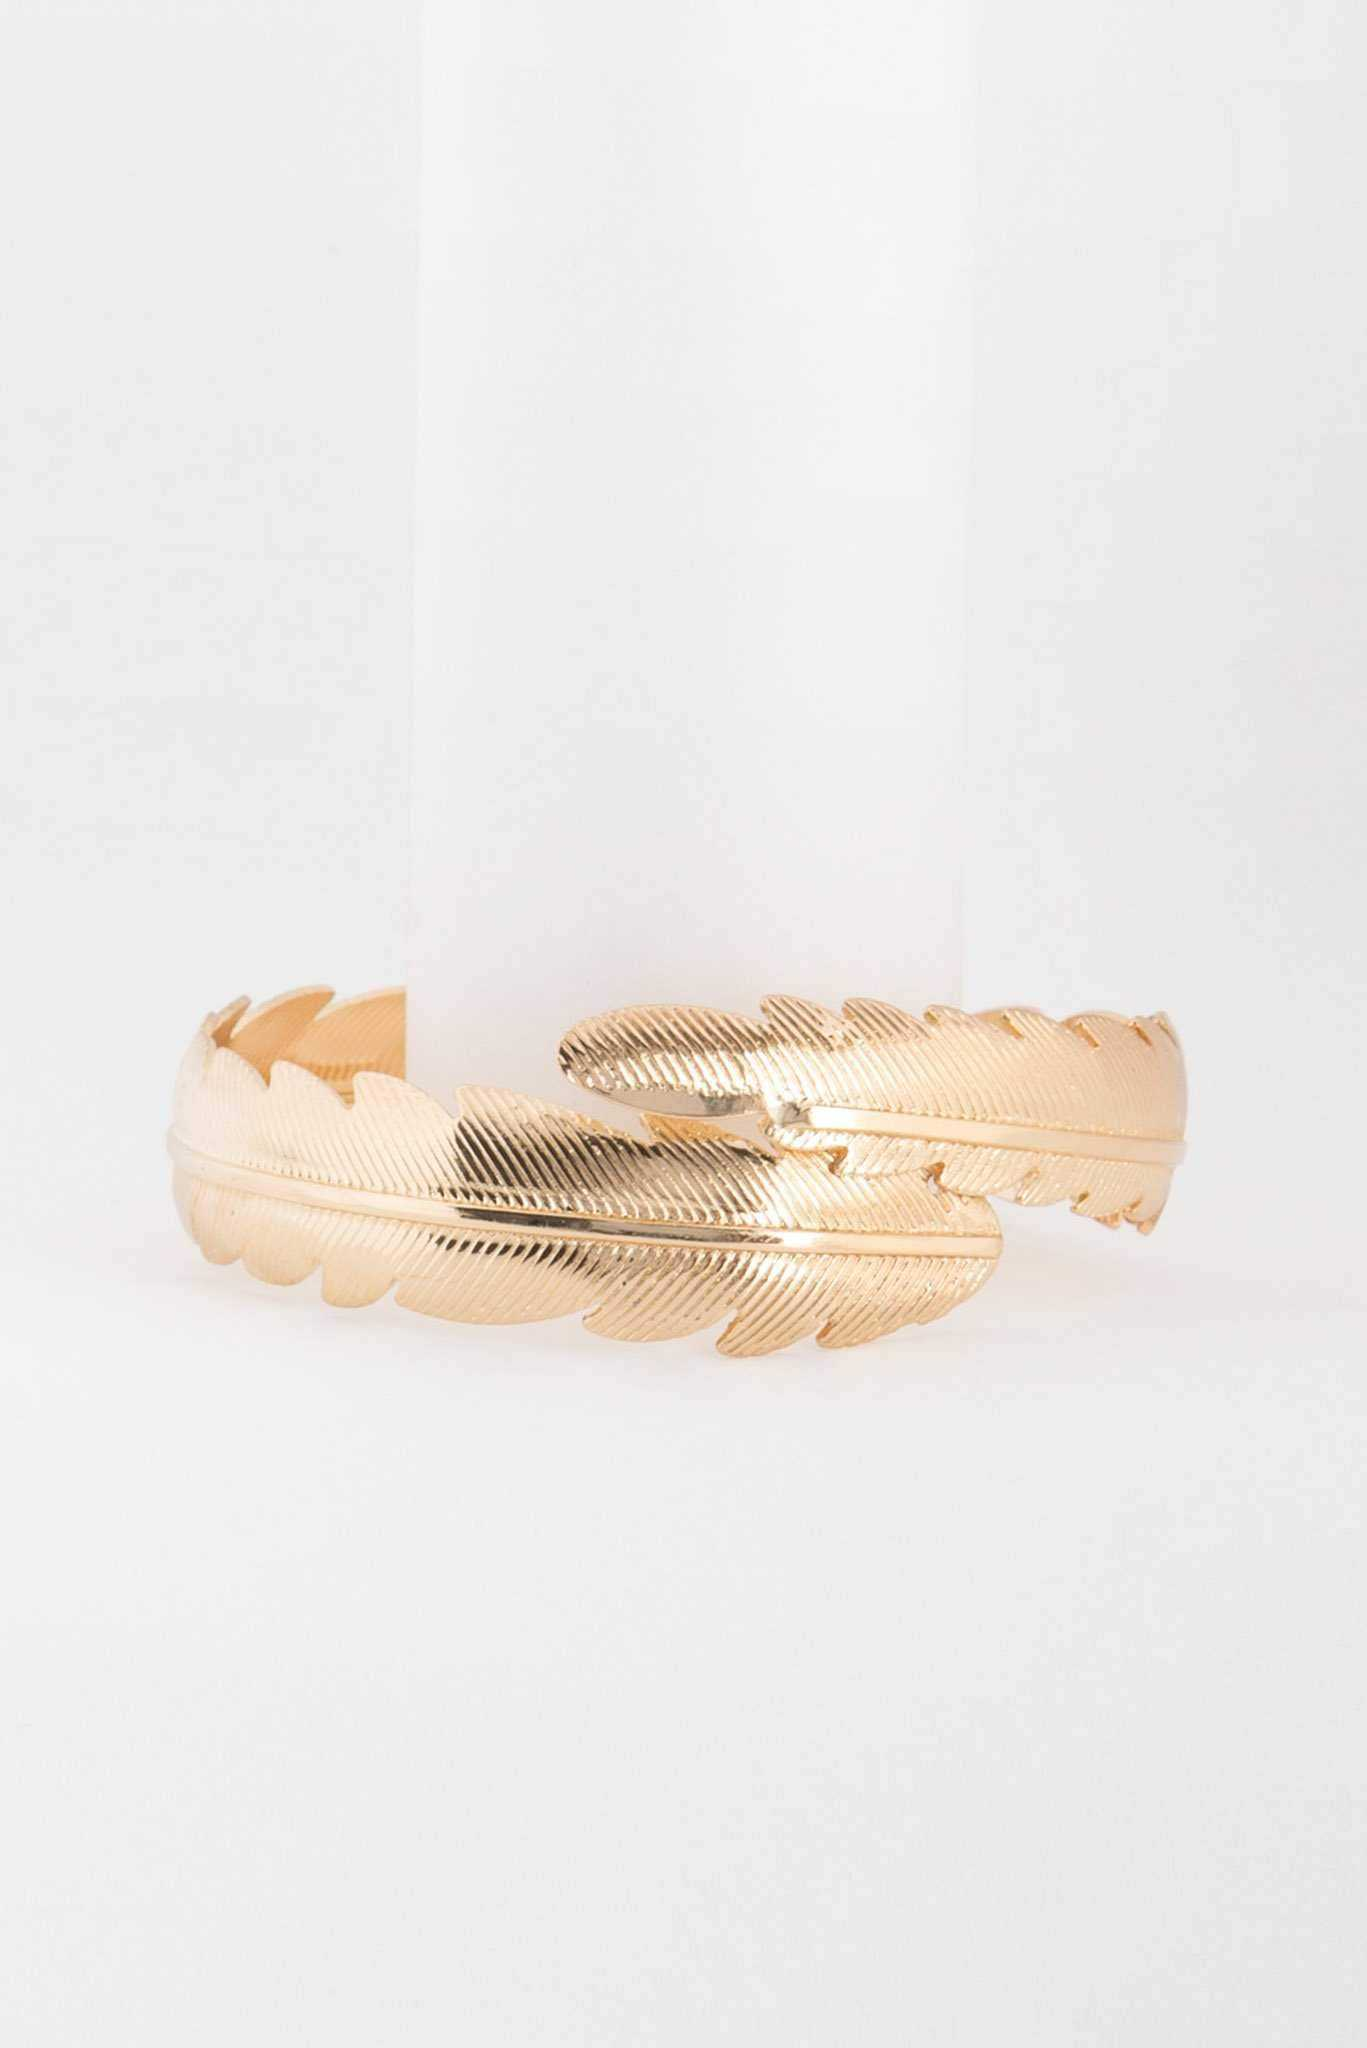 Leaf Cuff Bracelet - Gold | Raw Orange